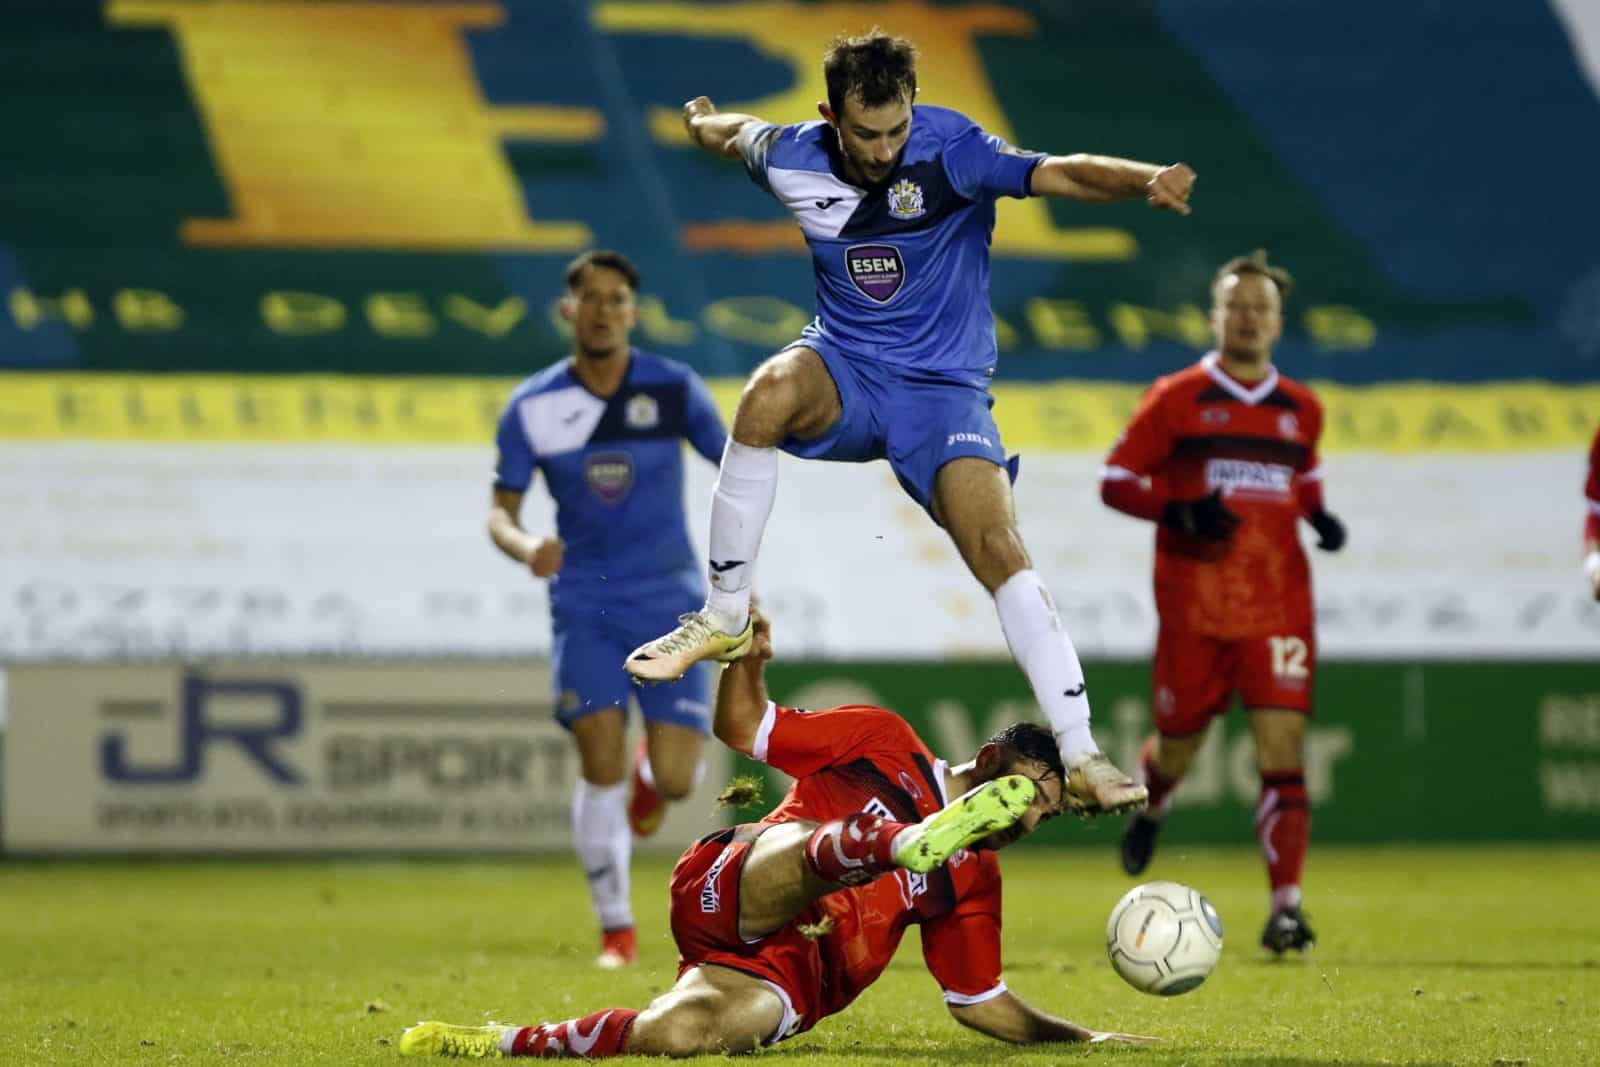 Adam Thomas, Stockport County 1-0 Alfreton Town